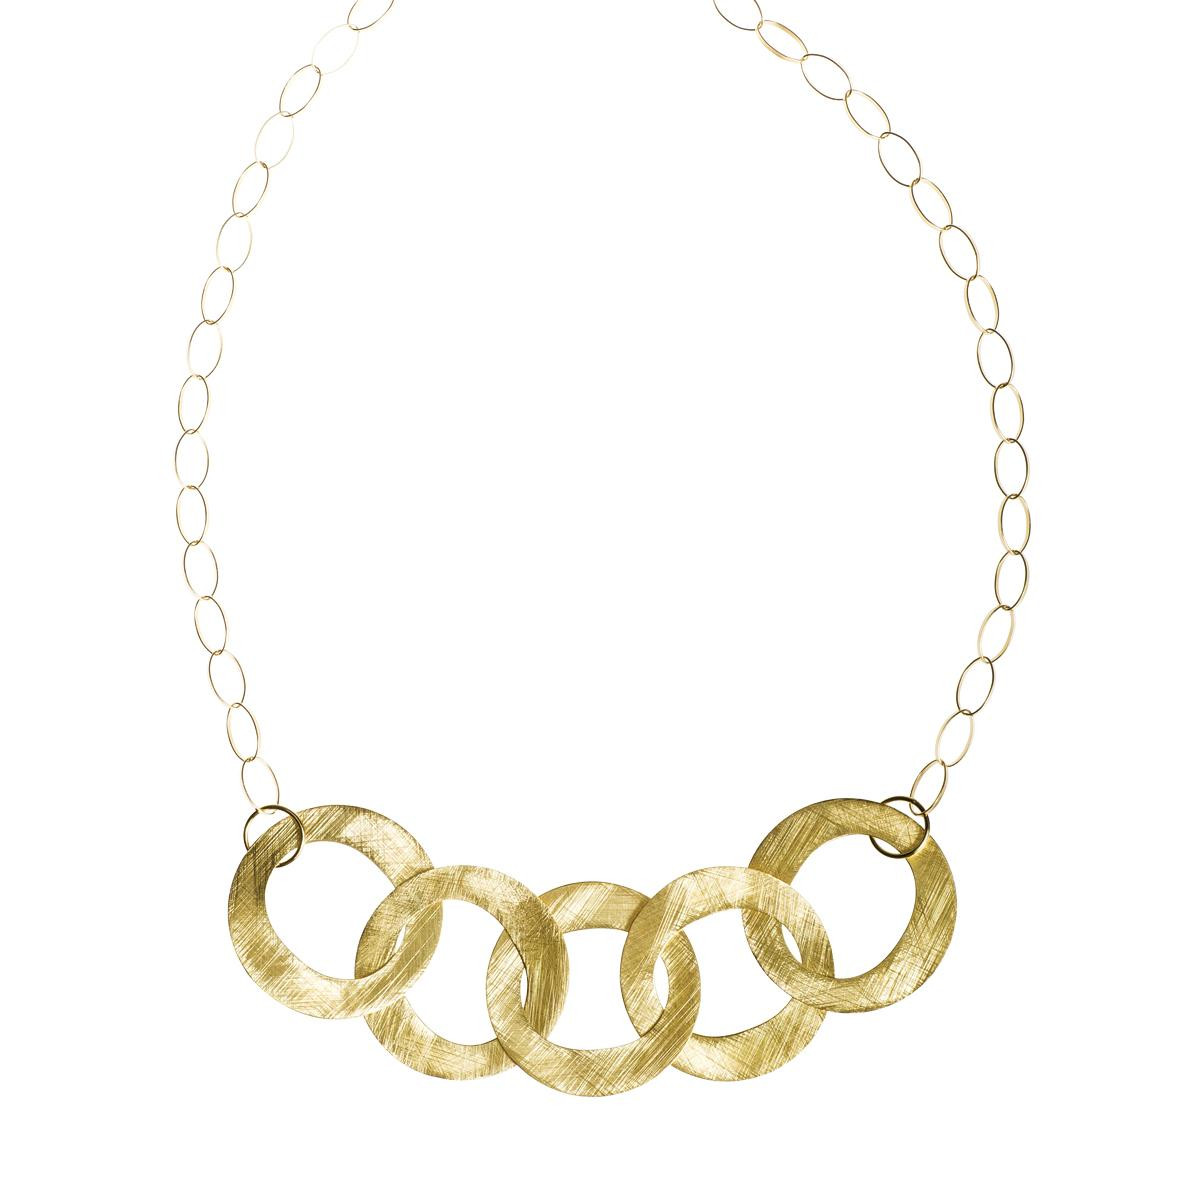 Vintage 18k Gold Interlocking Necklace